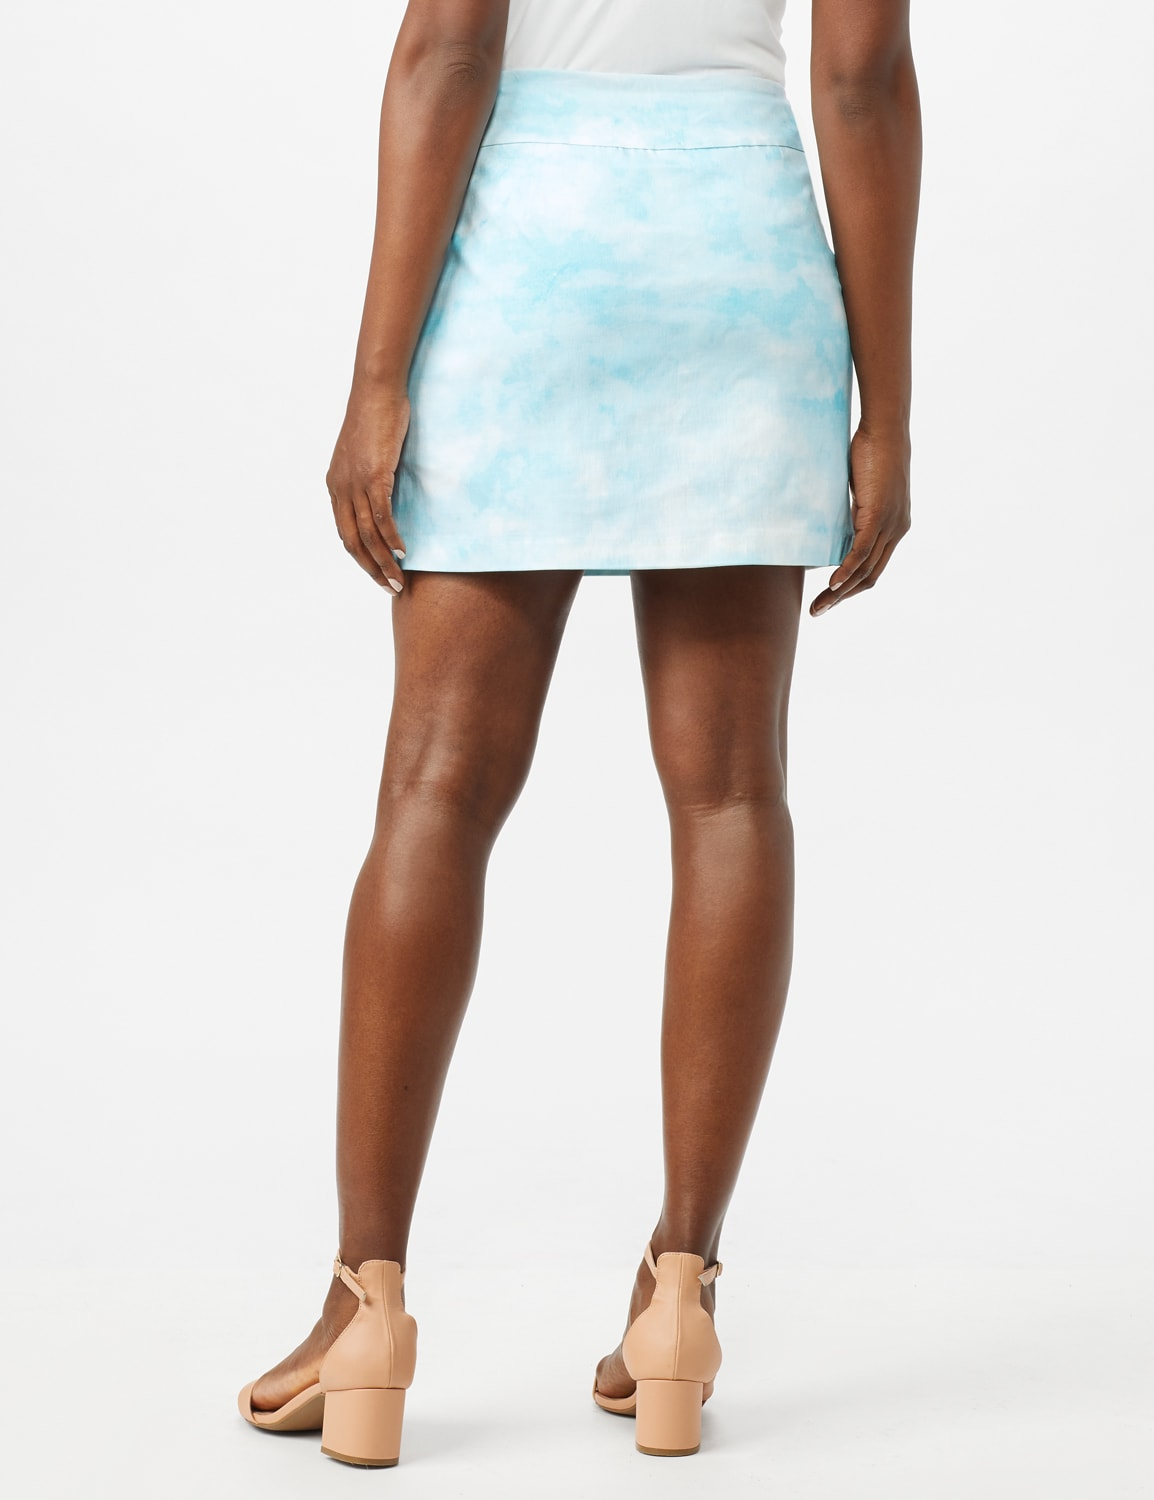 Pull On Tie Dye Skorts with Pockets - Azurine/White - Back